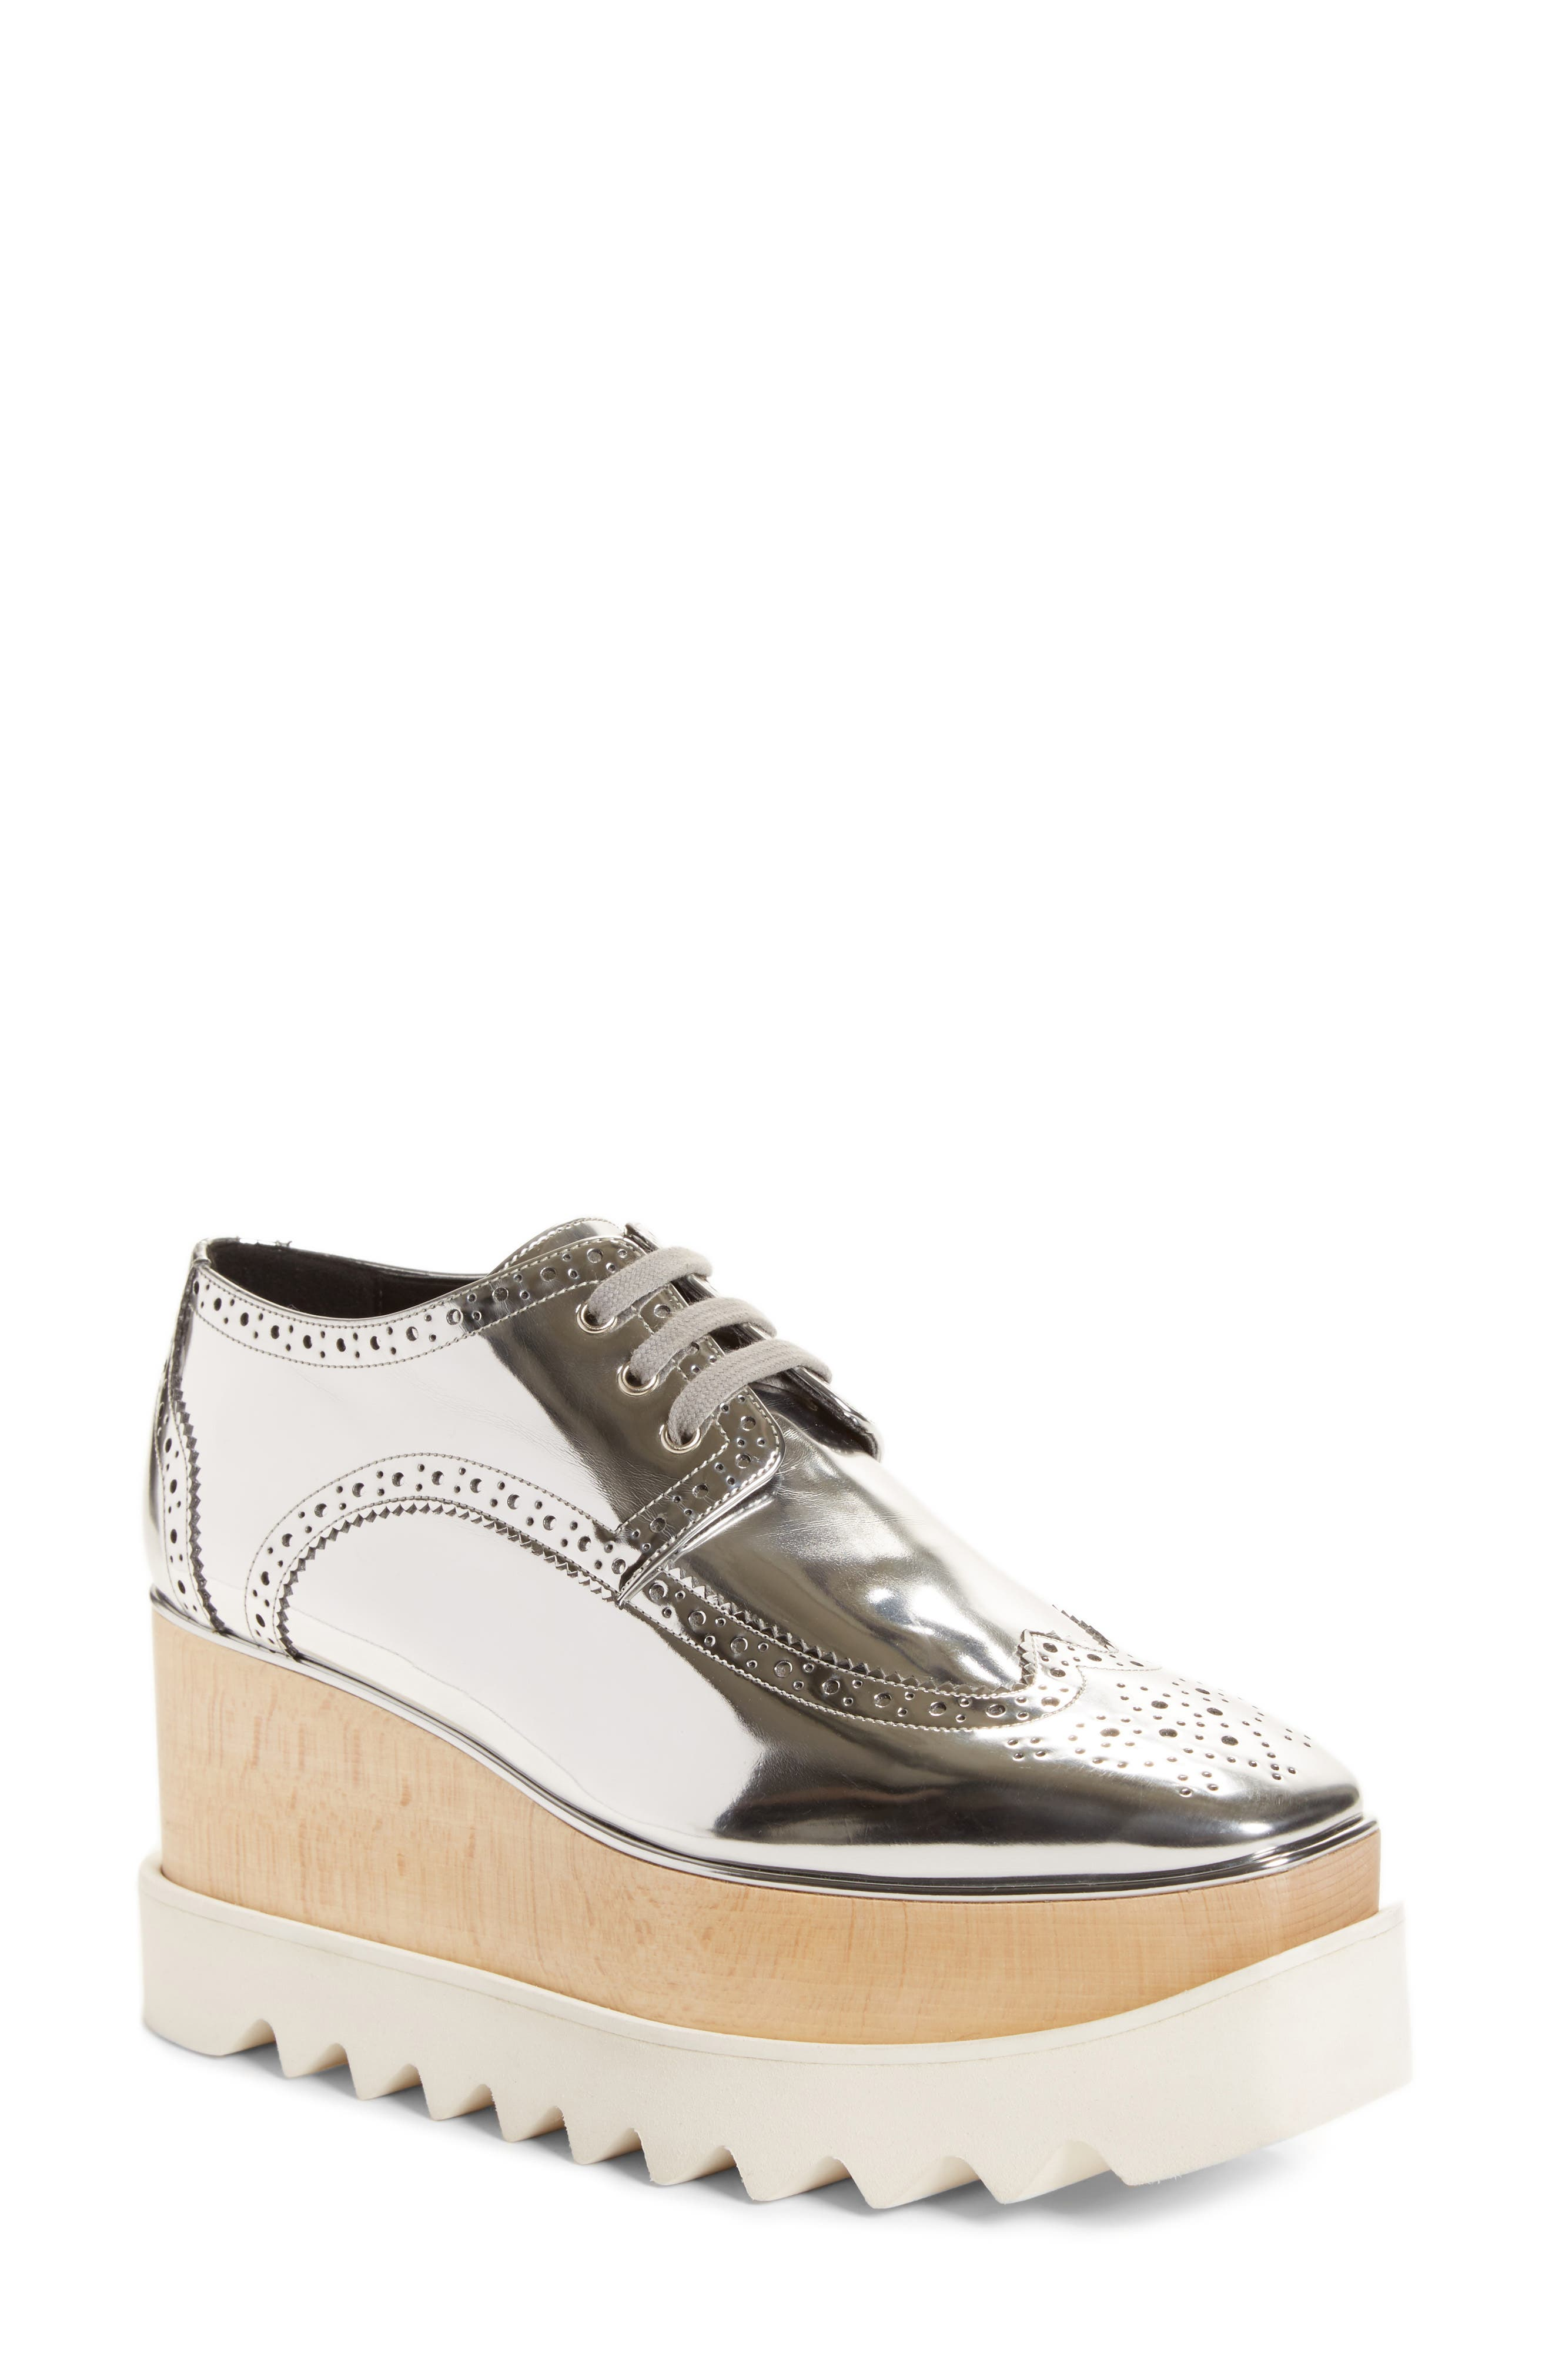 Elyse Brogue Platform Loafer,                         Main,                         color, Metallic Silver